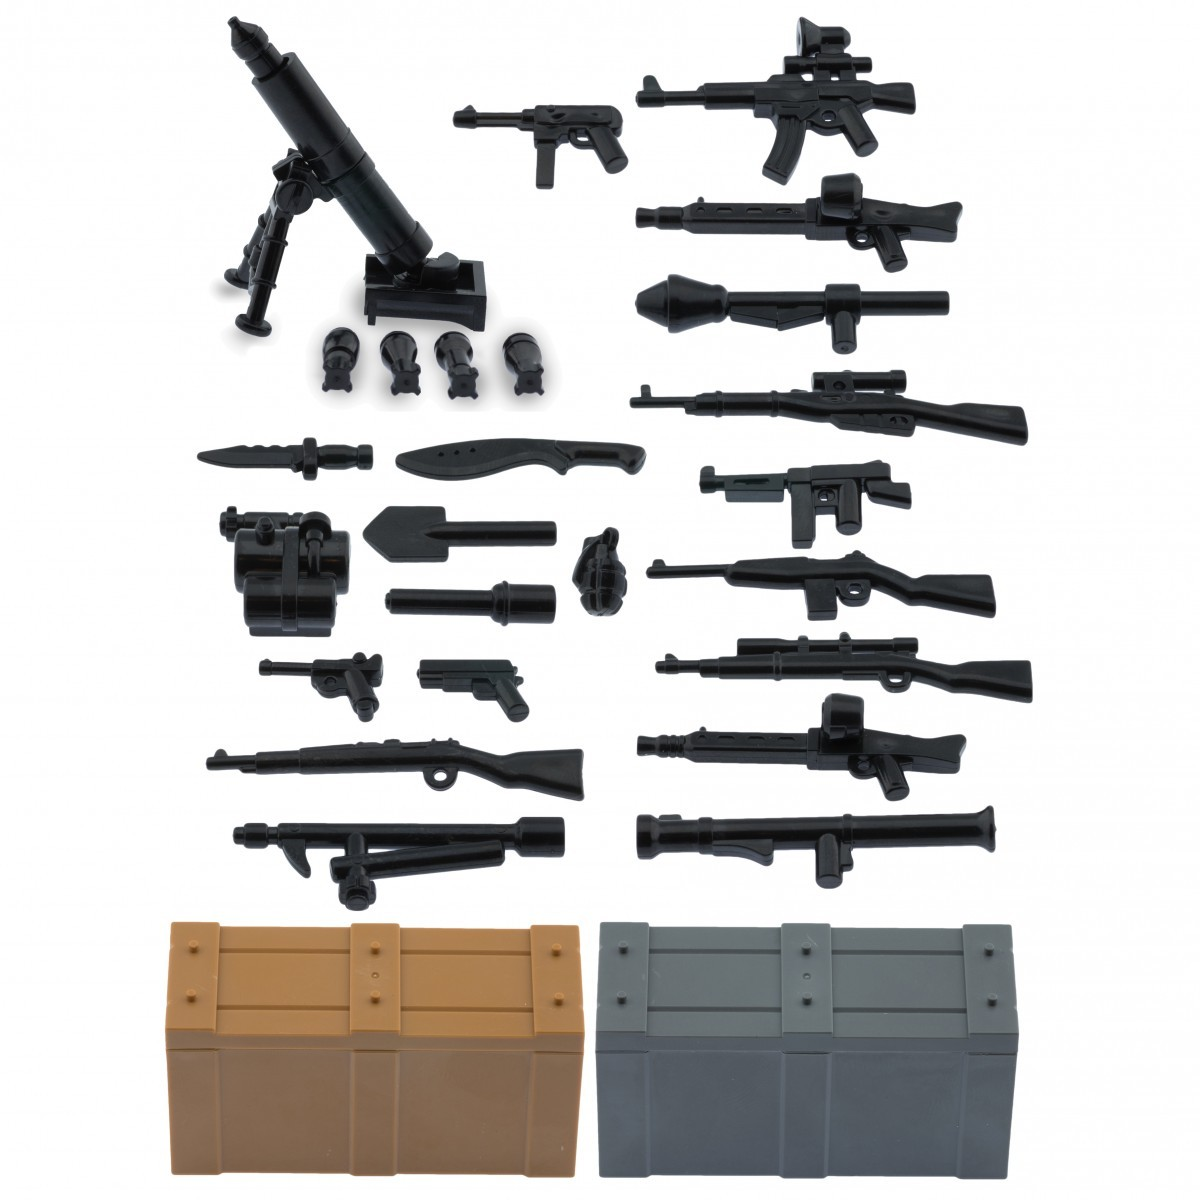 My military guns weapons pack for lego minifigures minifig accessories a weapons pack and crates